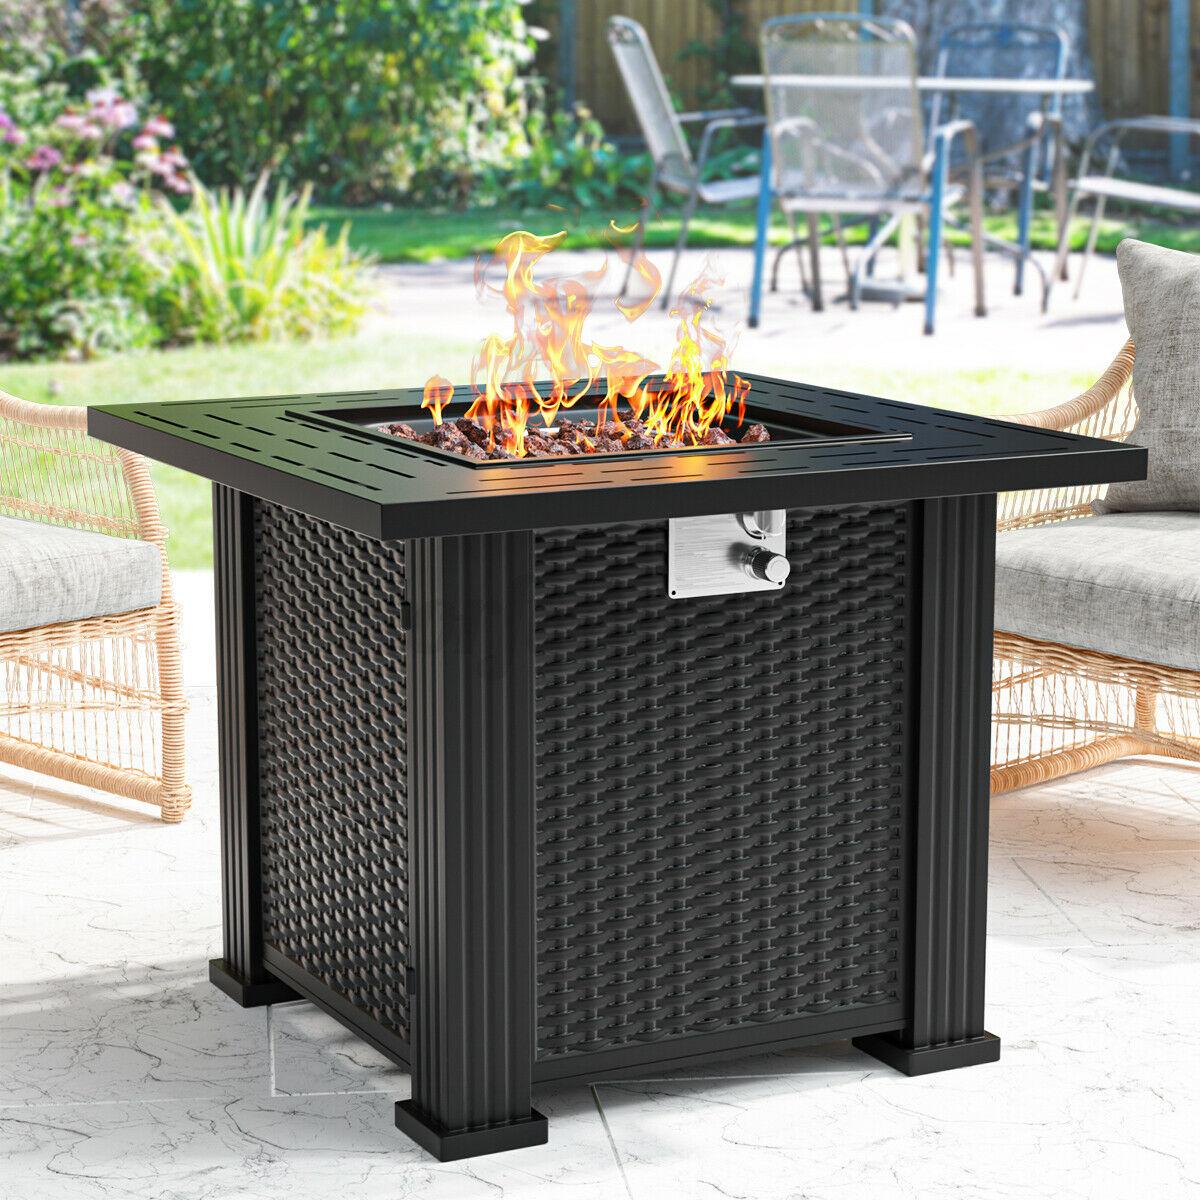 Fire Pit Gas Firepit Patio Garden Burner Square Fireplace Outdoor Table W/ Cover